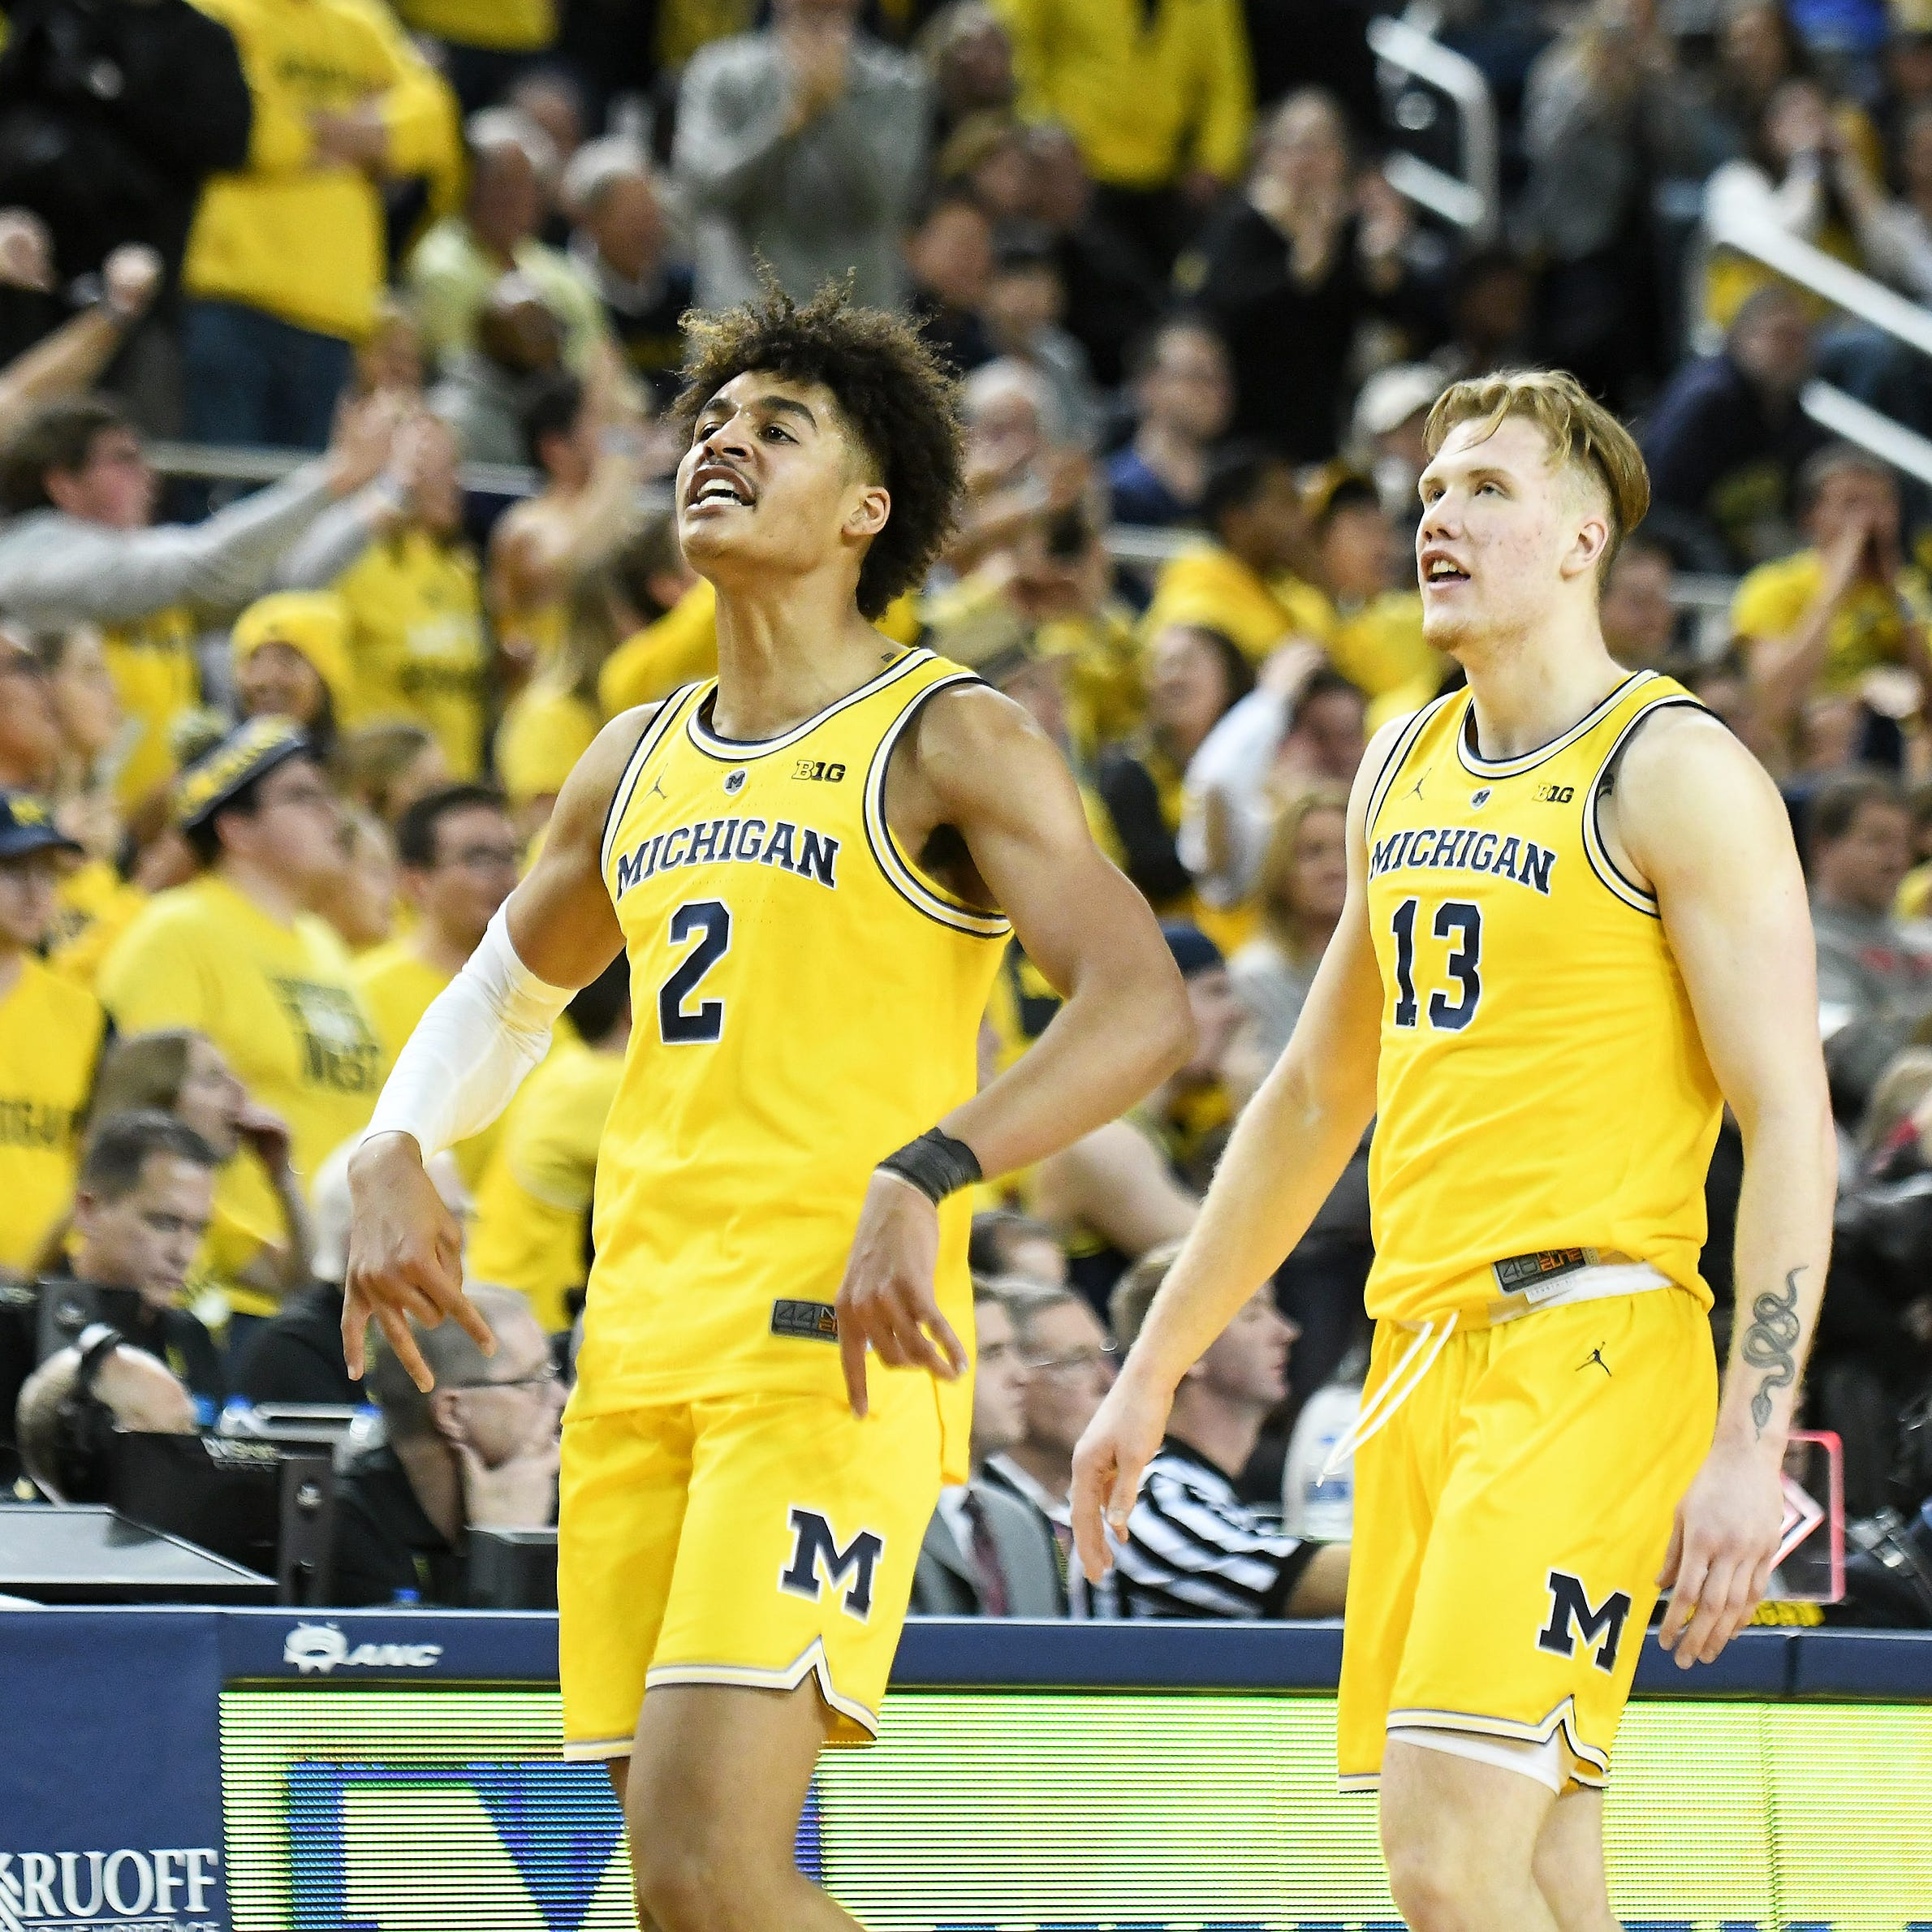 Michigan's Jordan Poole to keep name in NBA Draft